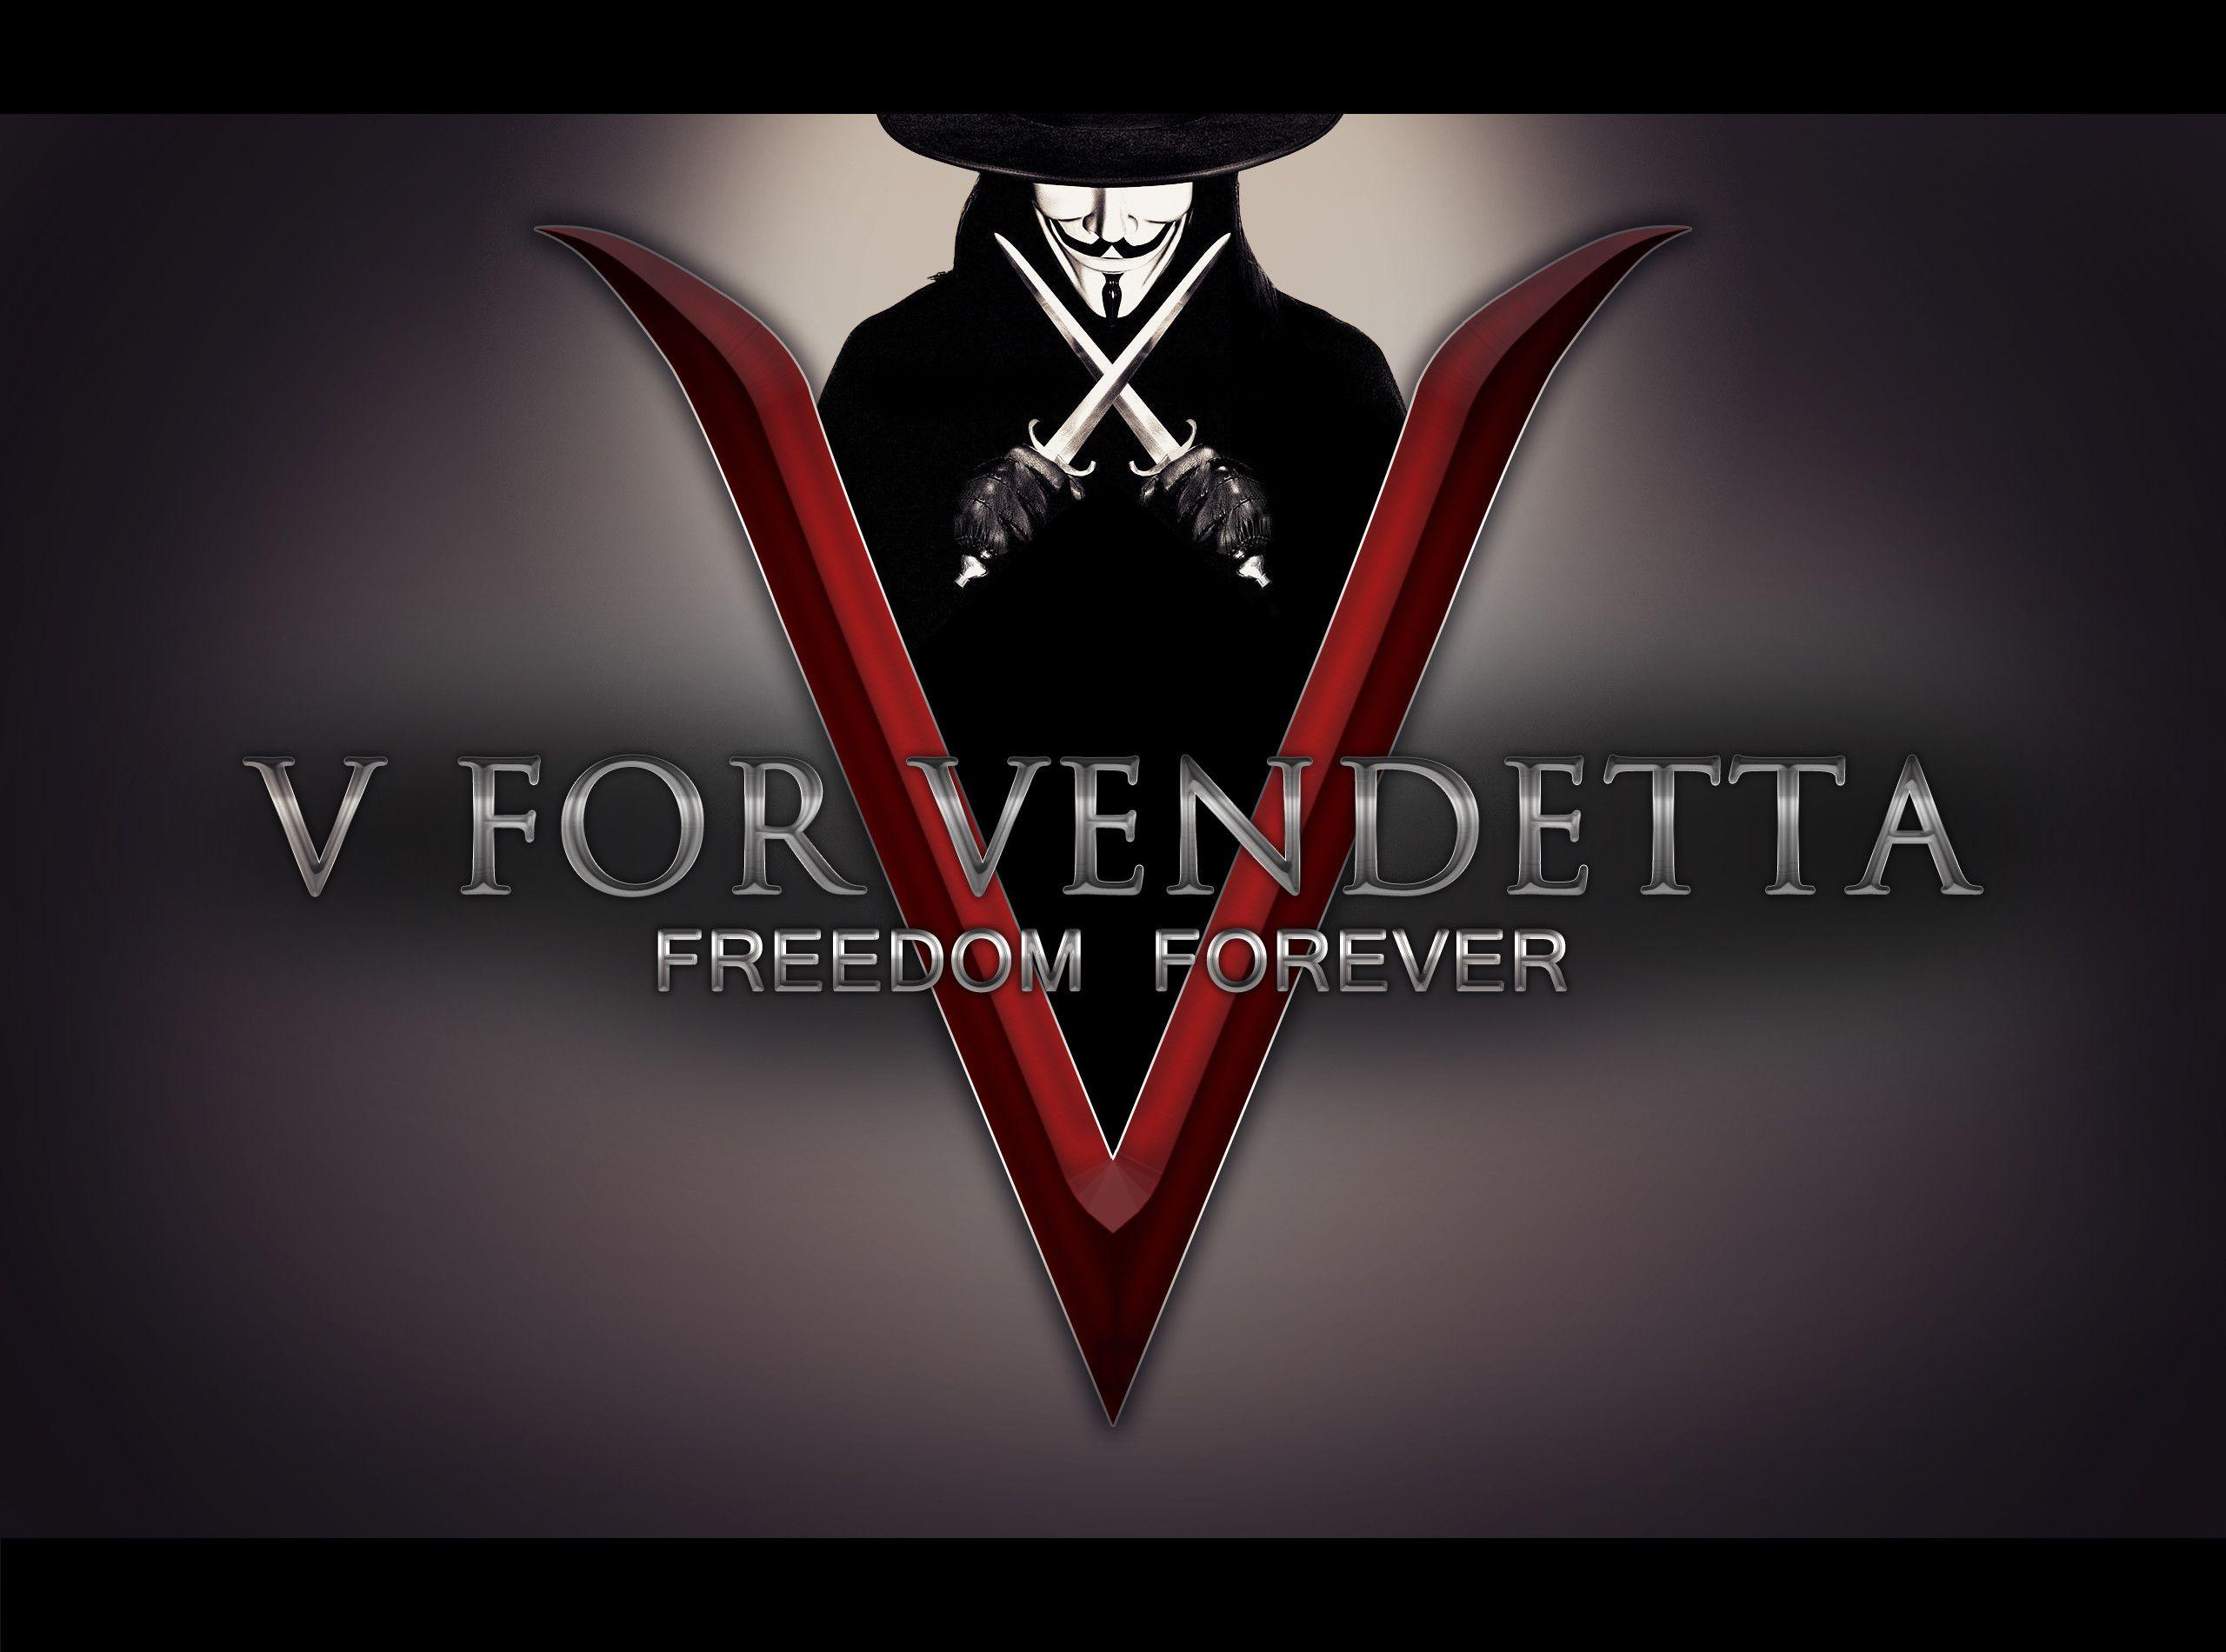 V for Vendetta desktop wallpapers | V for Vendetta wallpapers